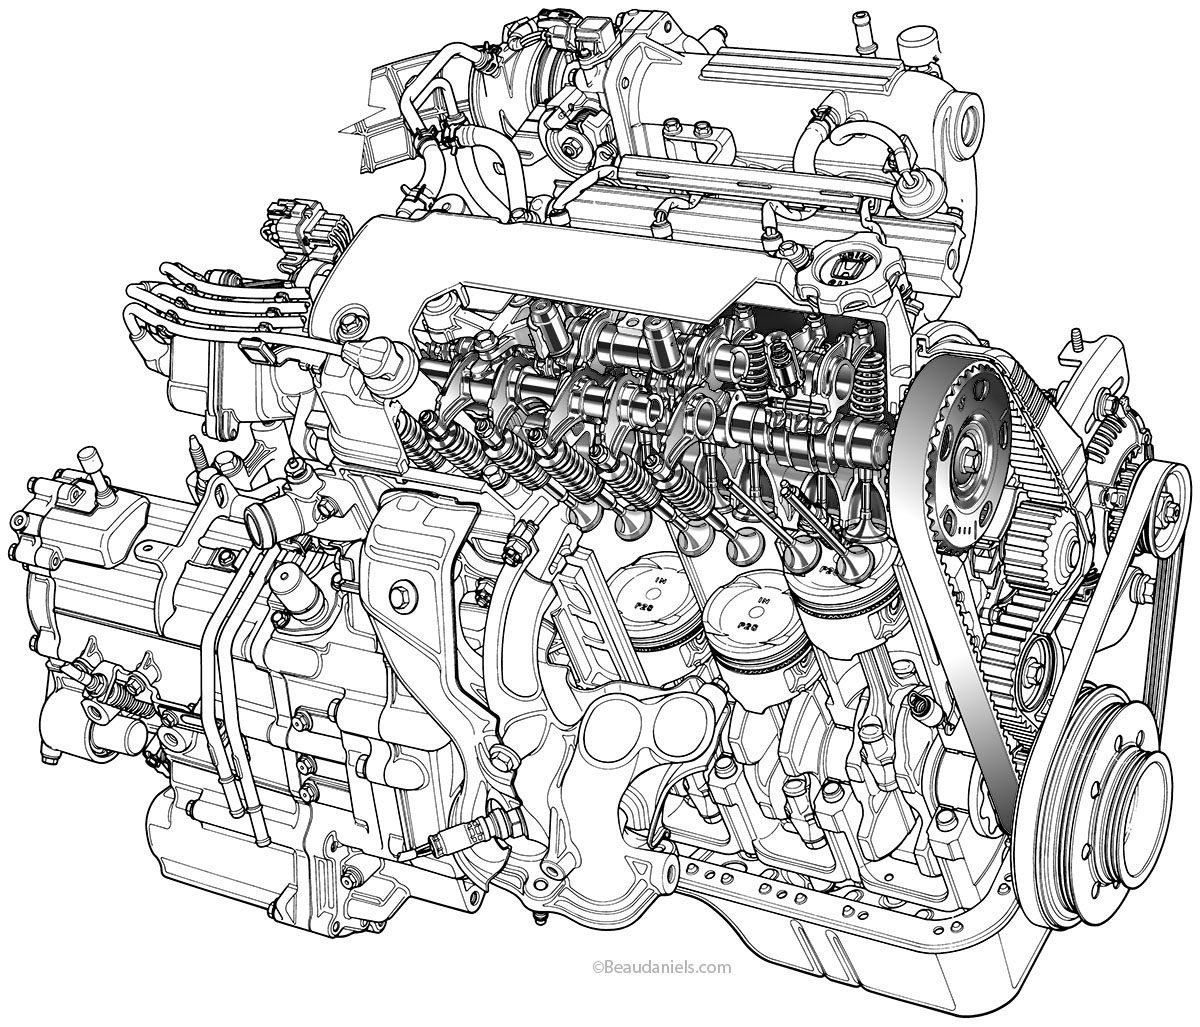 dodge ram 1500 engine diagram 2004 lincoln ls v6 engine Toyota Celica Engine Diagram Toyota Engine Diagram